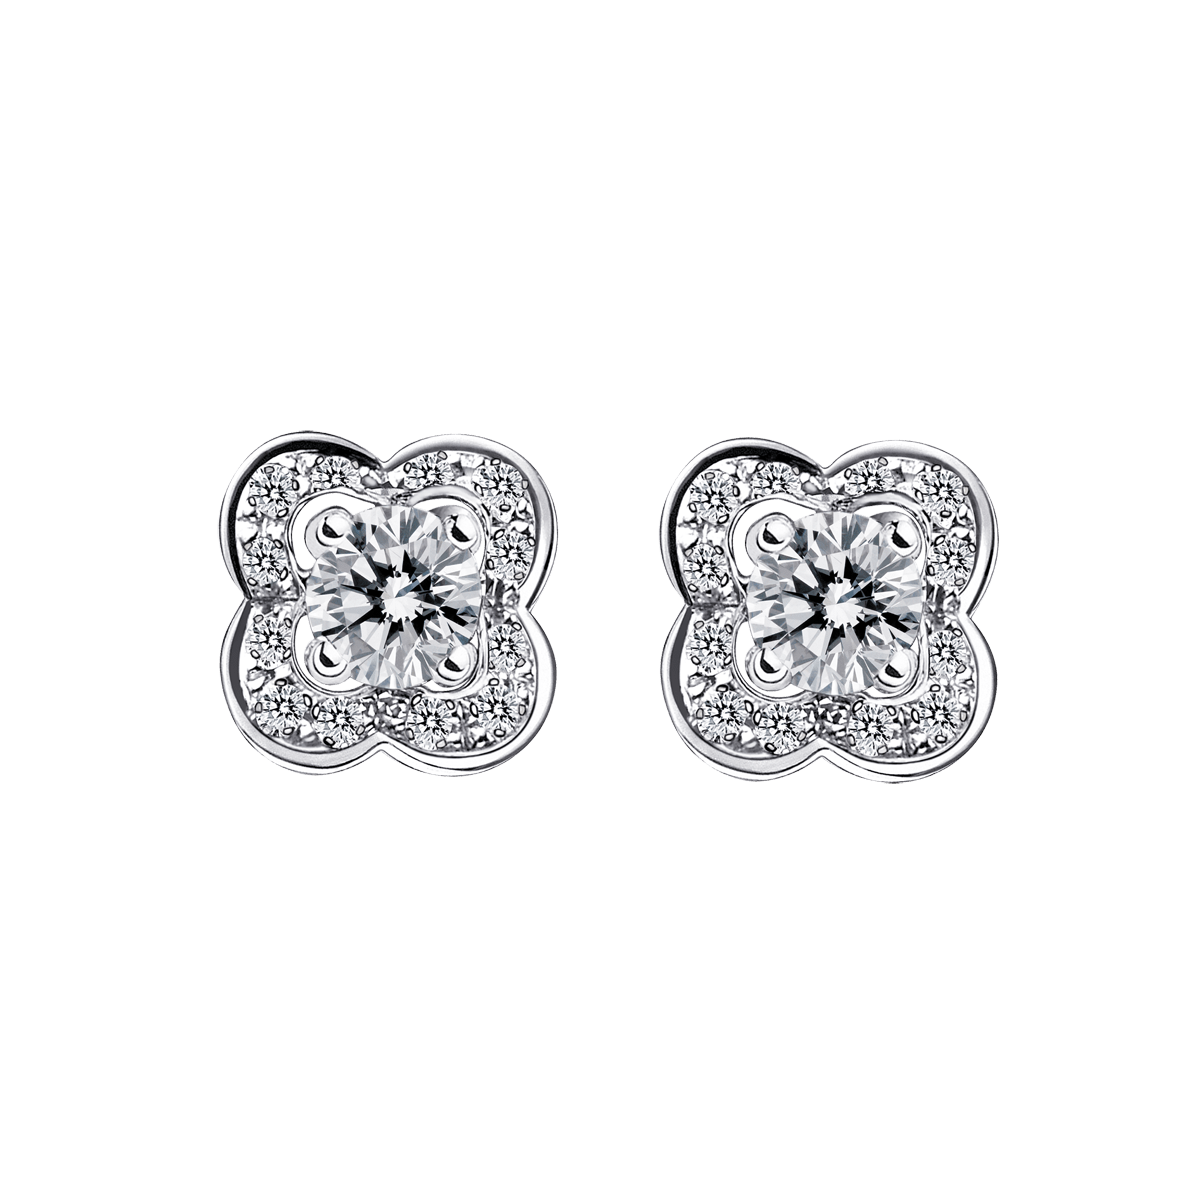 Chance of Love earrings, white gold and diamonds